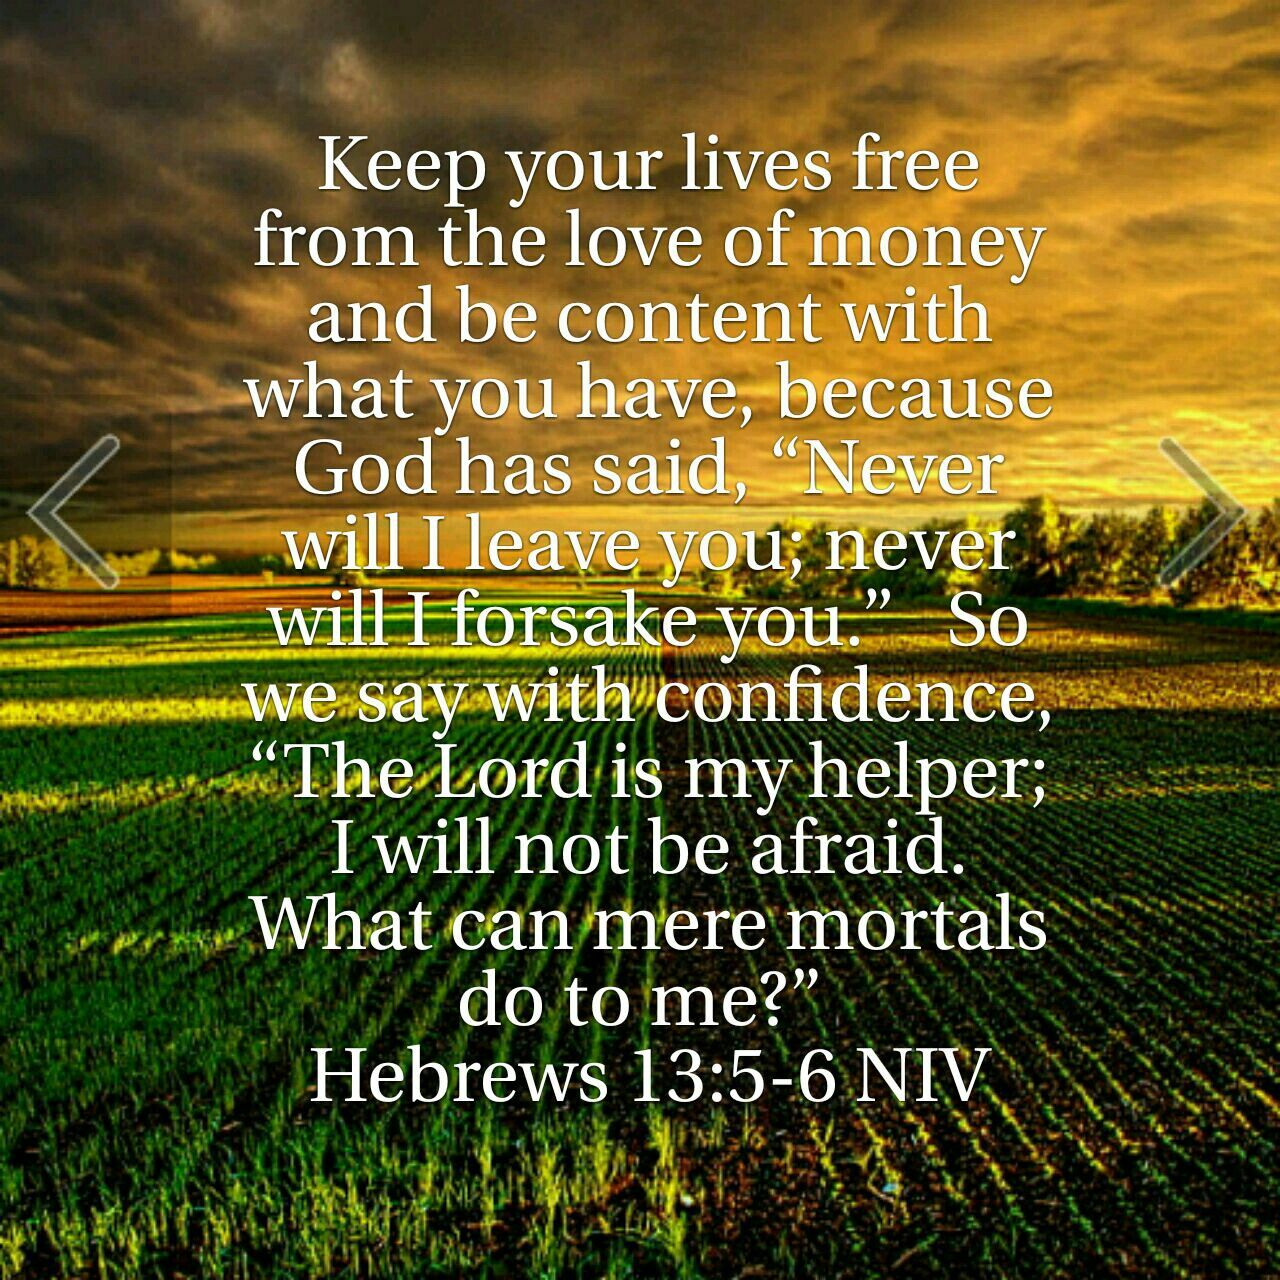 Proverbs 31 30 Kjv True Love Bible Promises - Year of Clean